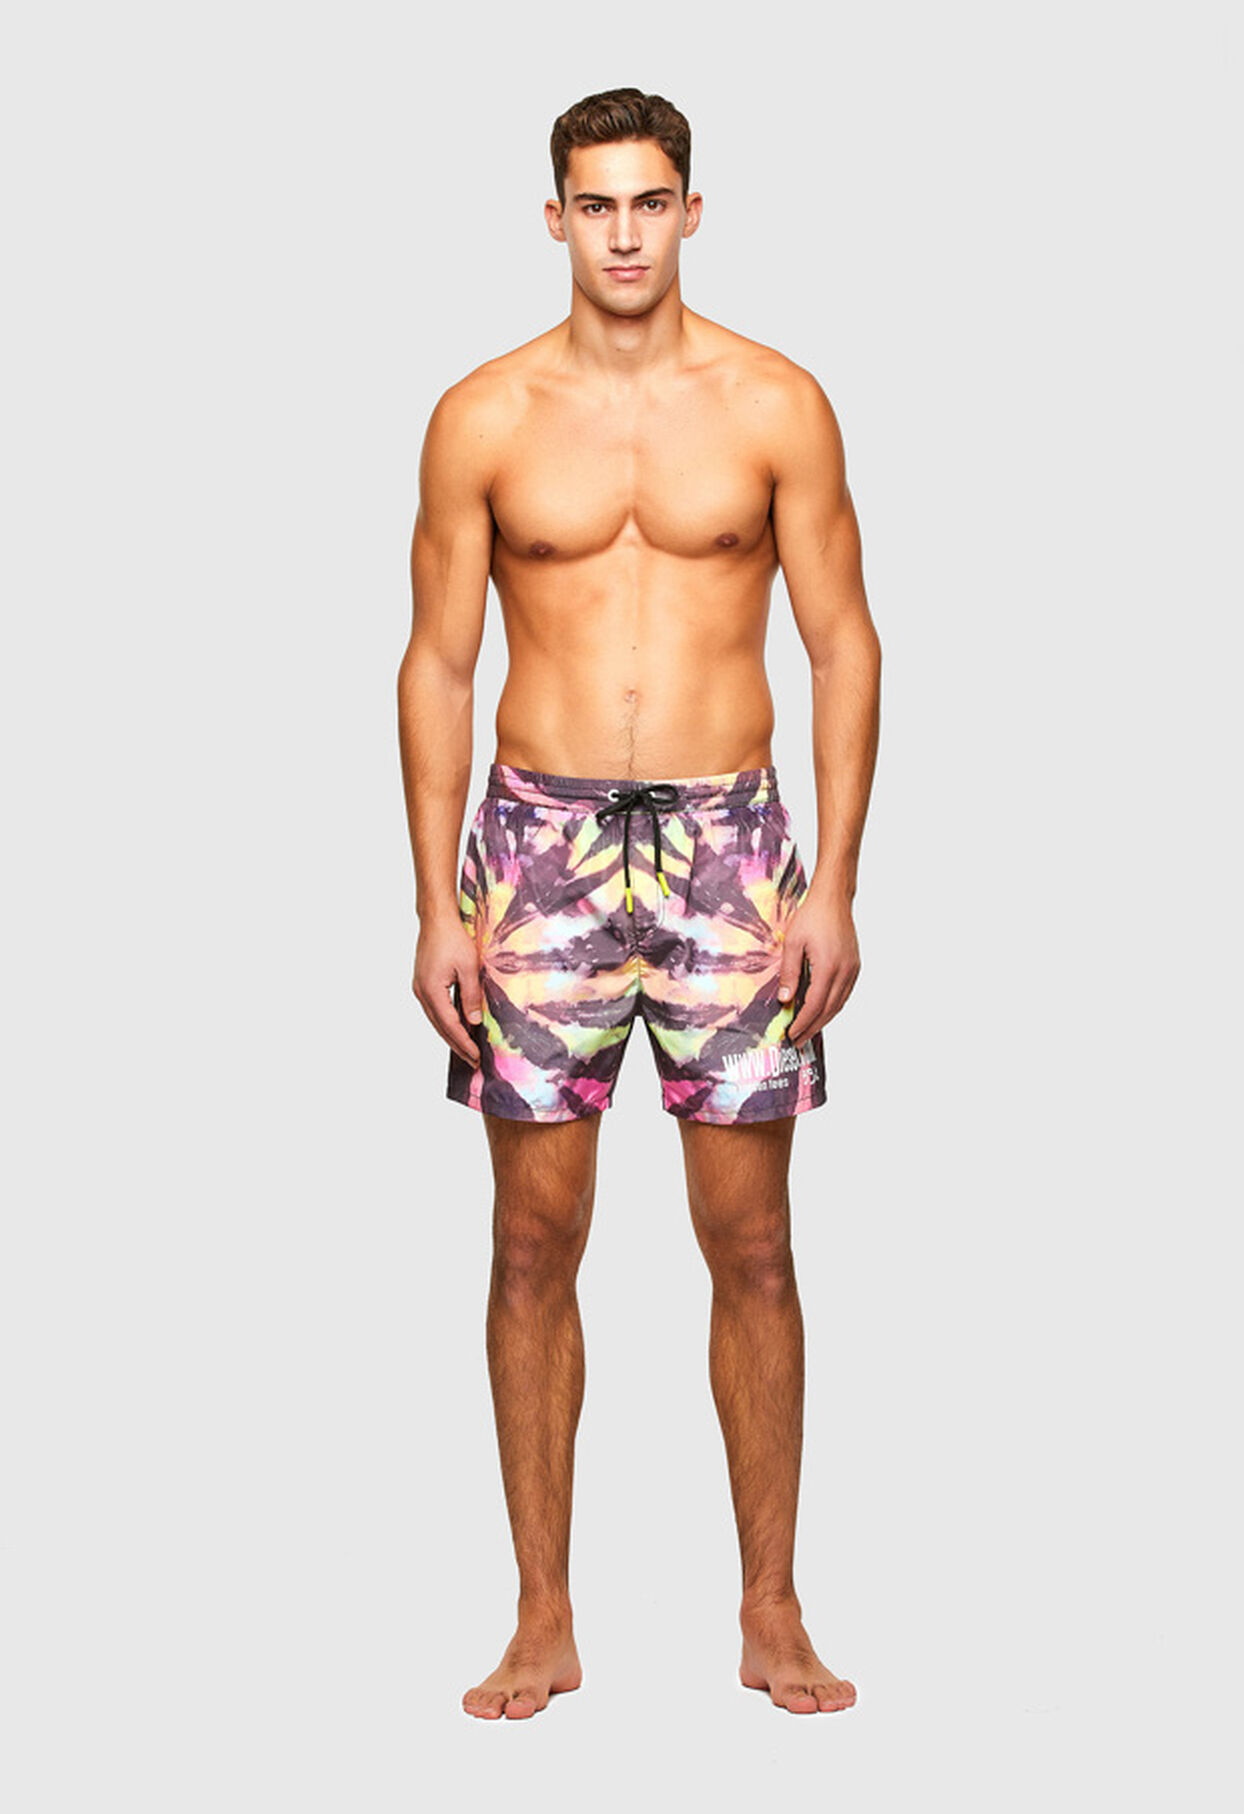 https://global.diesel.com/dw/image/v2/BBLG_PRD/on/demandware.static/-/Library-Sites-DieselMFSharedLibrary/default/dw34758e8d/CATEGORYOV/2X2_BEACHWEAR_B,BX-WAVE-2017_00SV9U_0JBAY_E0213_F.jpg?sw=1244&sh=1814